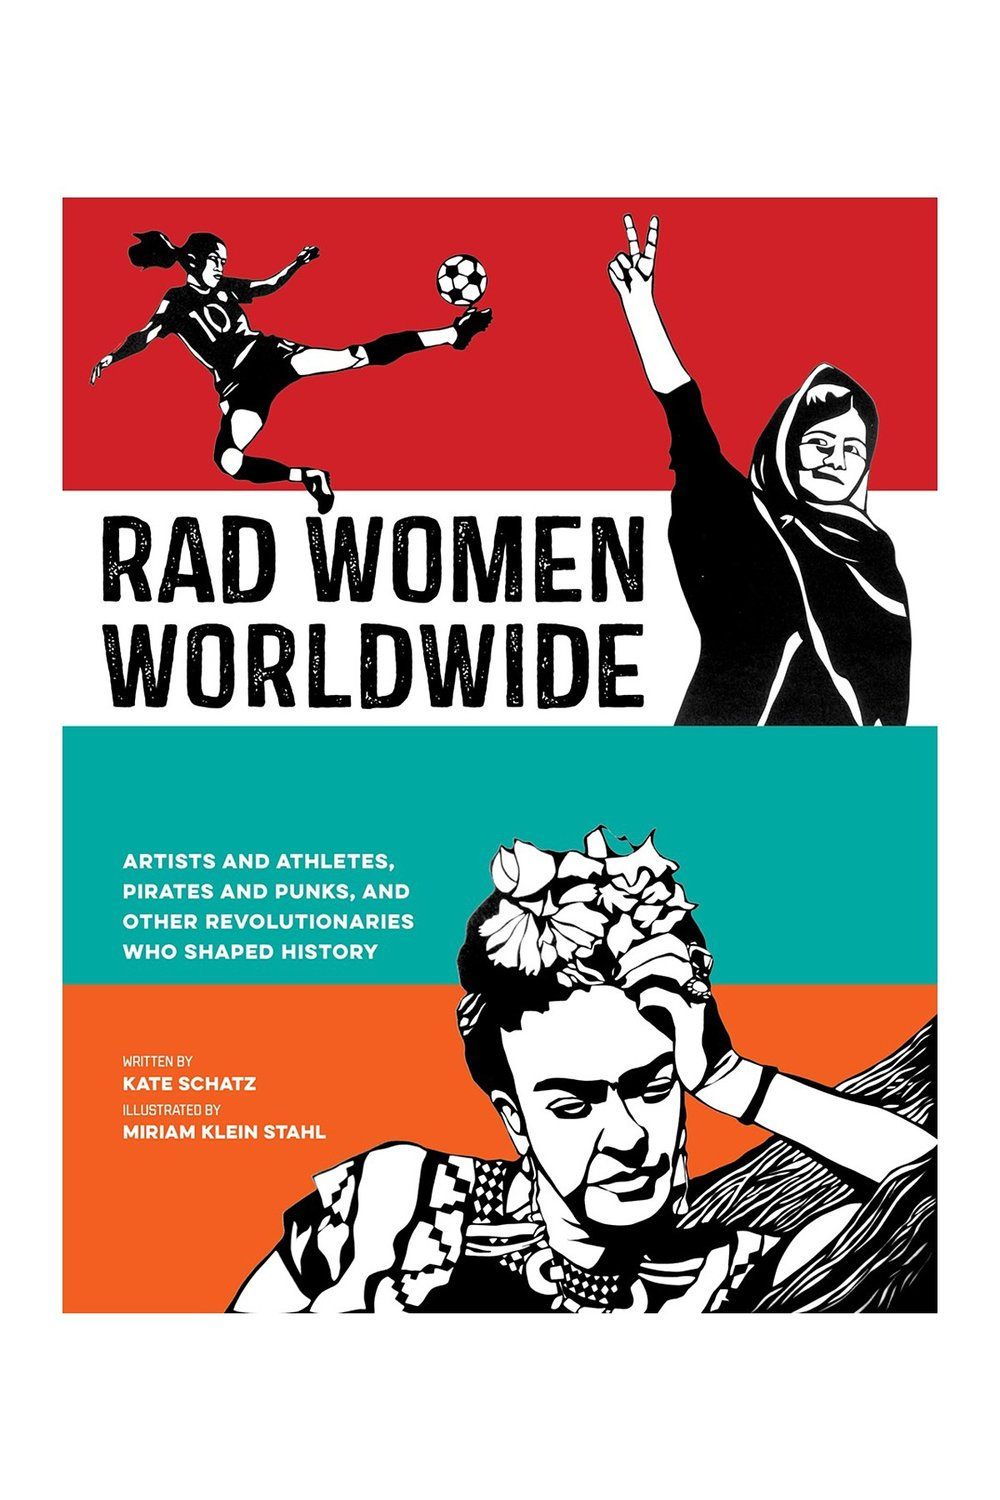 Rad Women Worldwide by Kate Schatz, illustrated by Miriam Klein Stahl